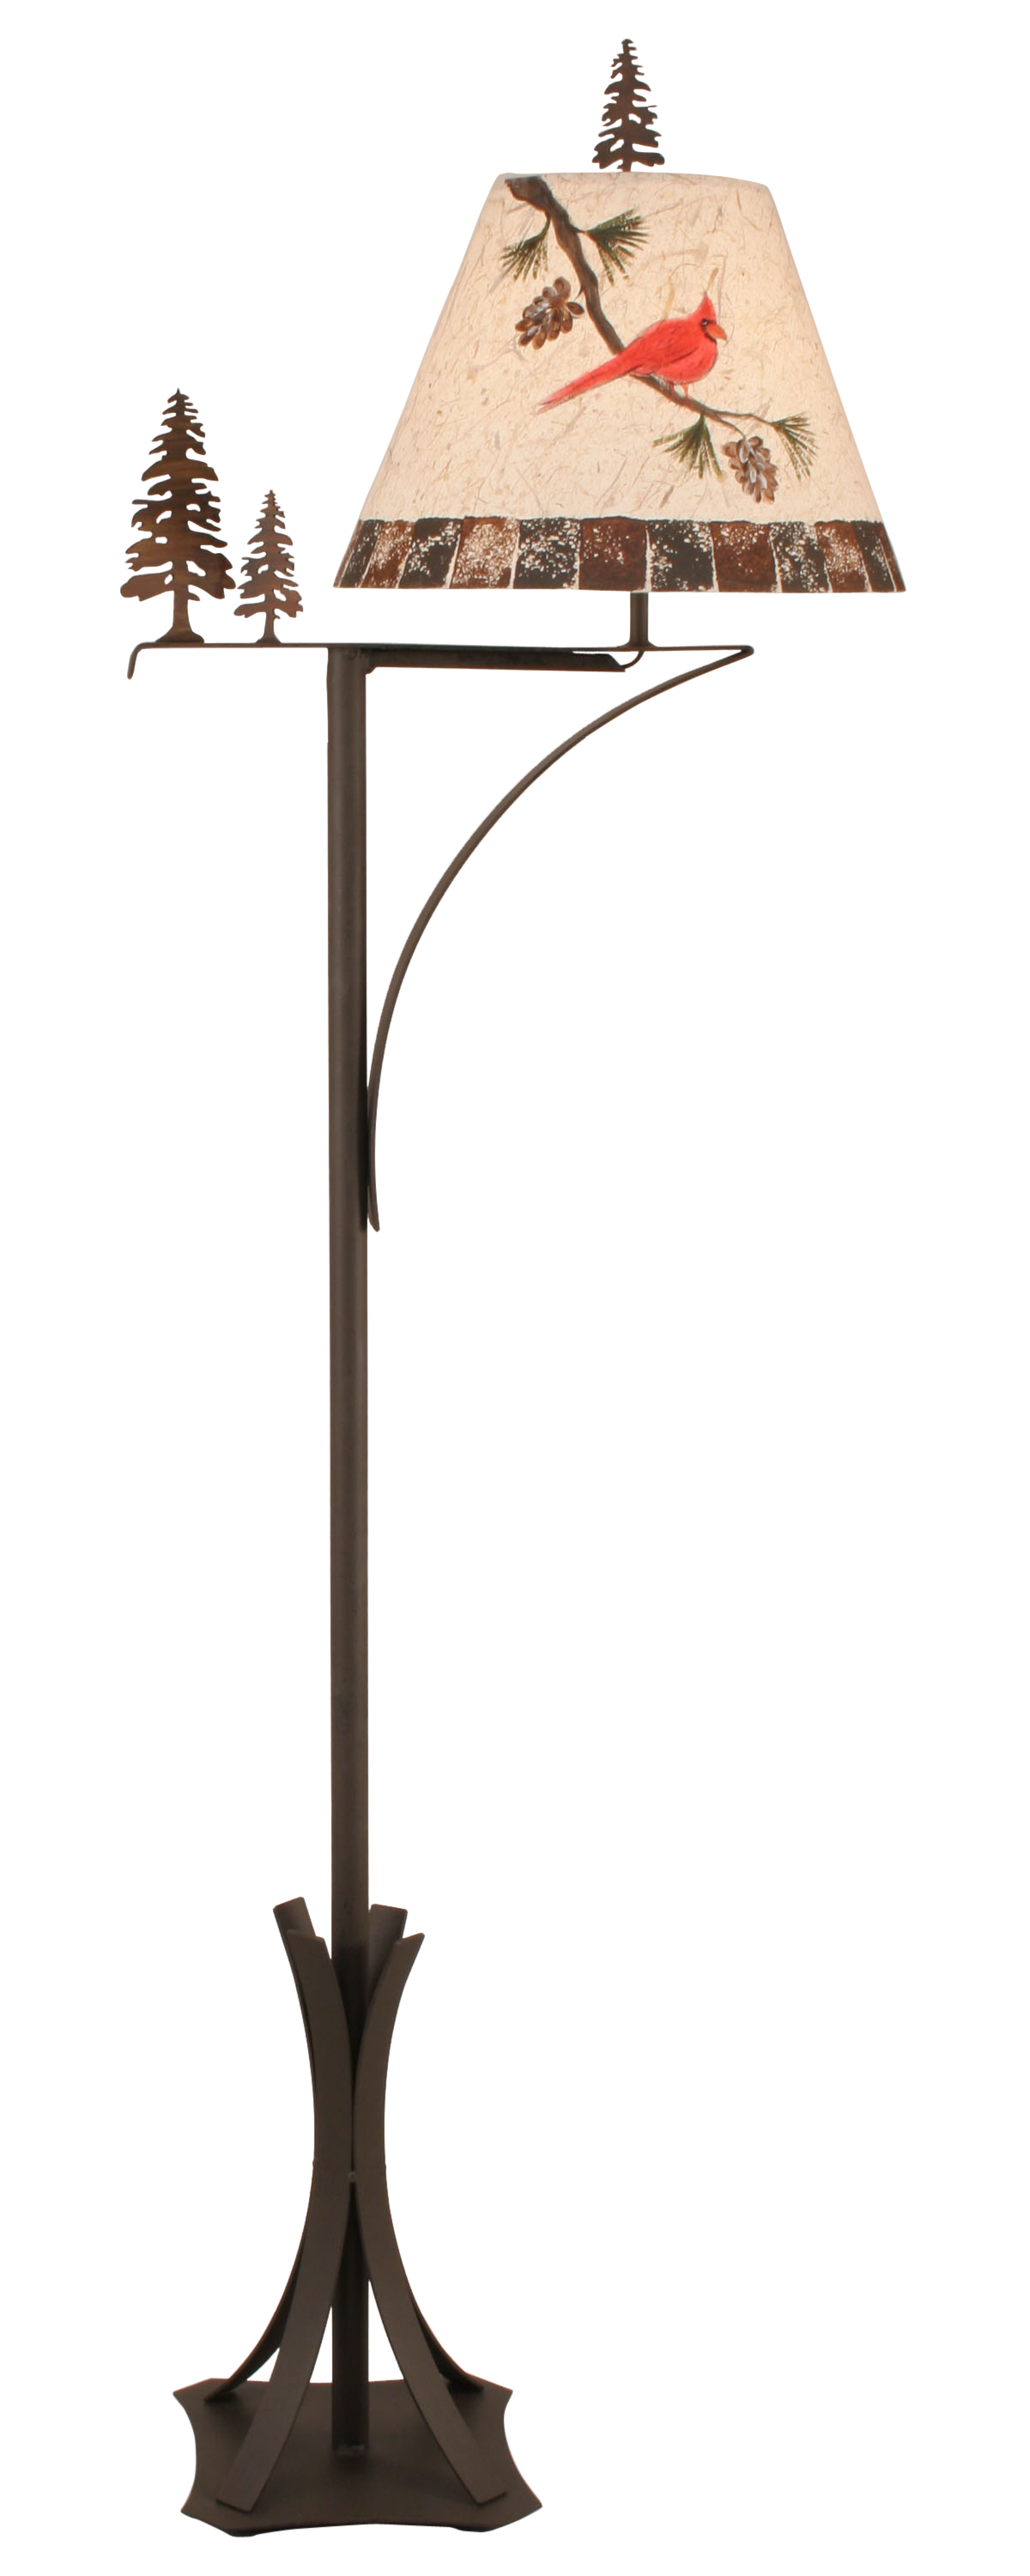 Charred Arm 2 Tree Floor Lamp w/ Cardinal Shade - Coast Lamp Shop